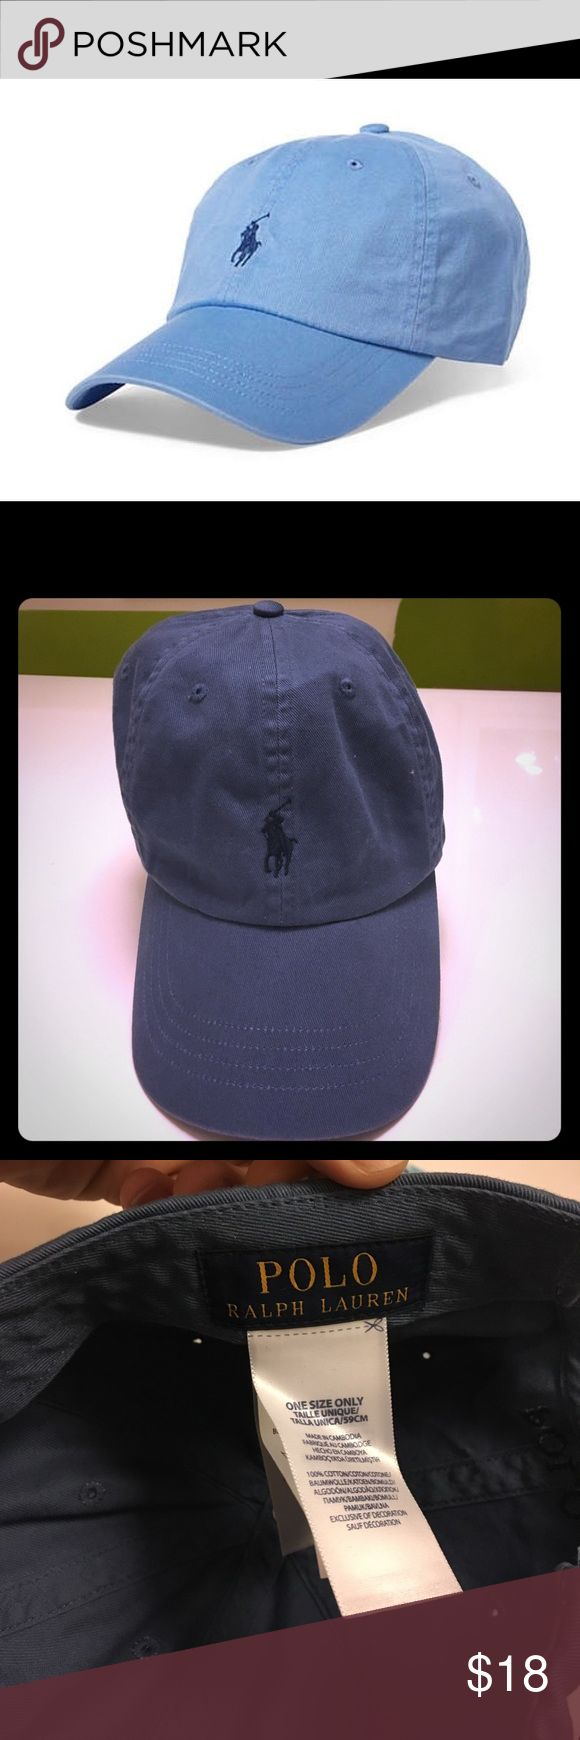 """Polo Ralph Lauren Blue Cotton Chino baseball cap This is a light blue adjustable baseball cap. This cap has only been worn a few times and is in great condition, the main pic I'm using is straight from the polo web site so due to the pro lighting the hat looks lighter blue than it looks in normal lighting. It's a tad darker than """"baby blue"""" and it is officially called """"Austin Blue"""" on the polo website. Let me know if you have any questions. Polo by Ralph Lauren Accessories Hats"""